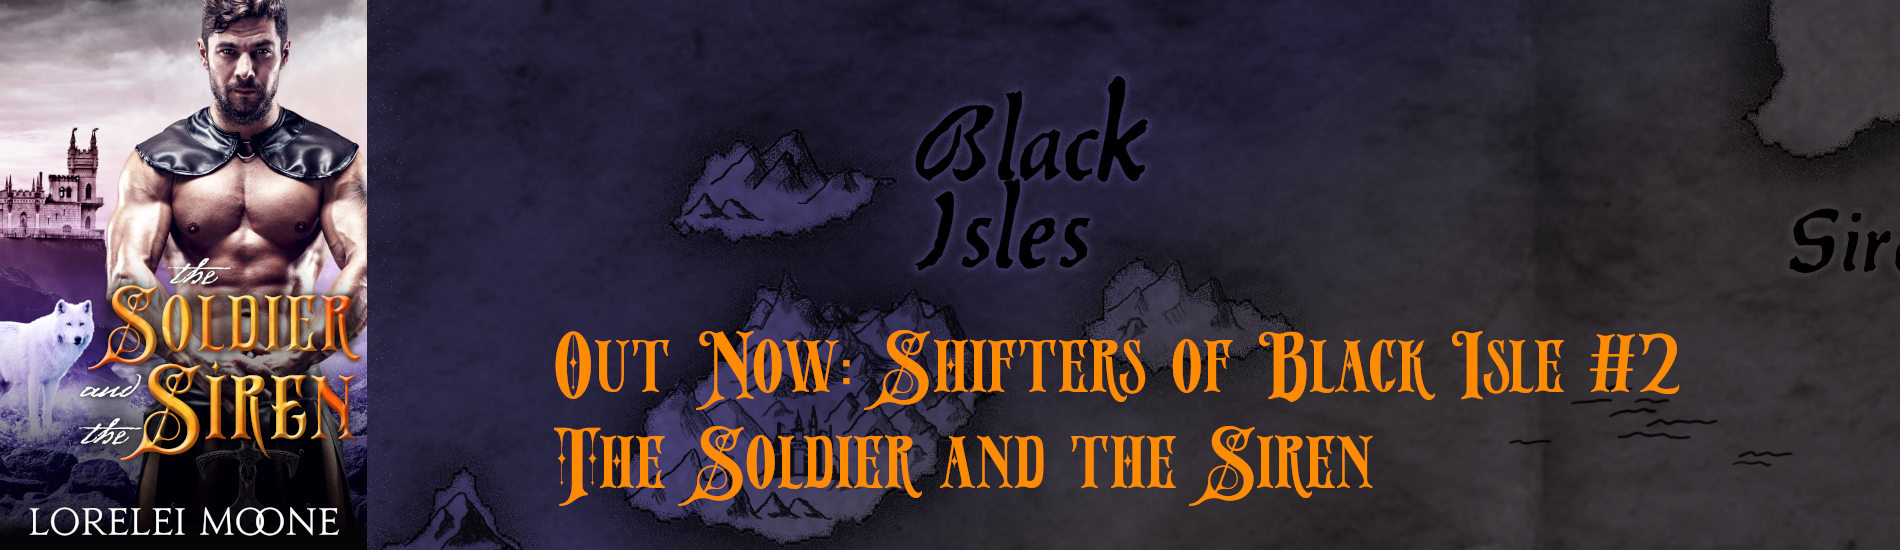 Out Now – The Soldier and the Siren (Shifters of Black Isle #2)